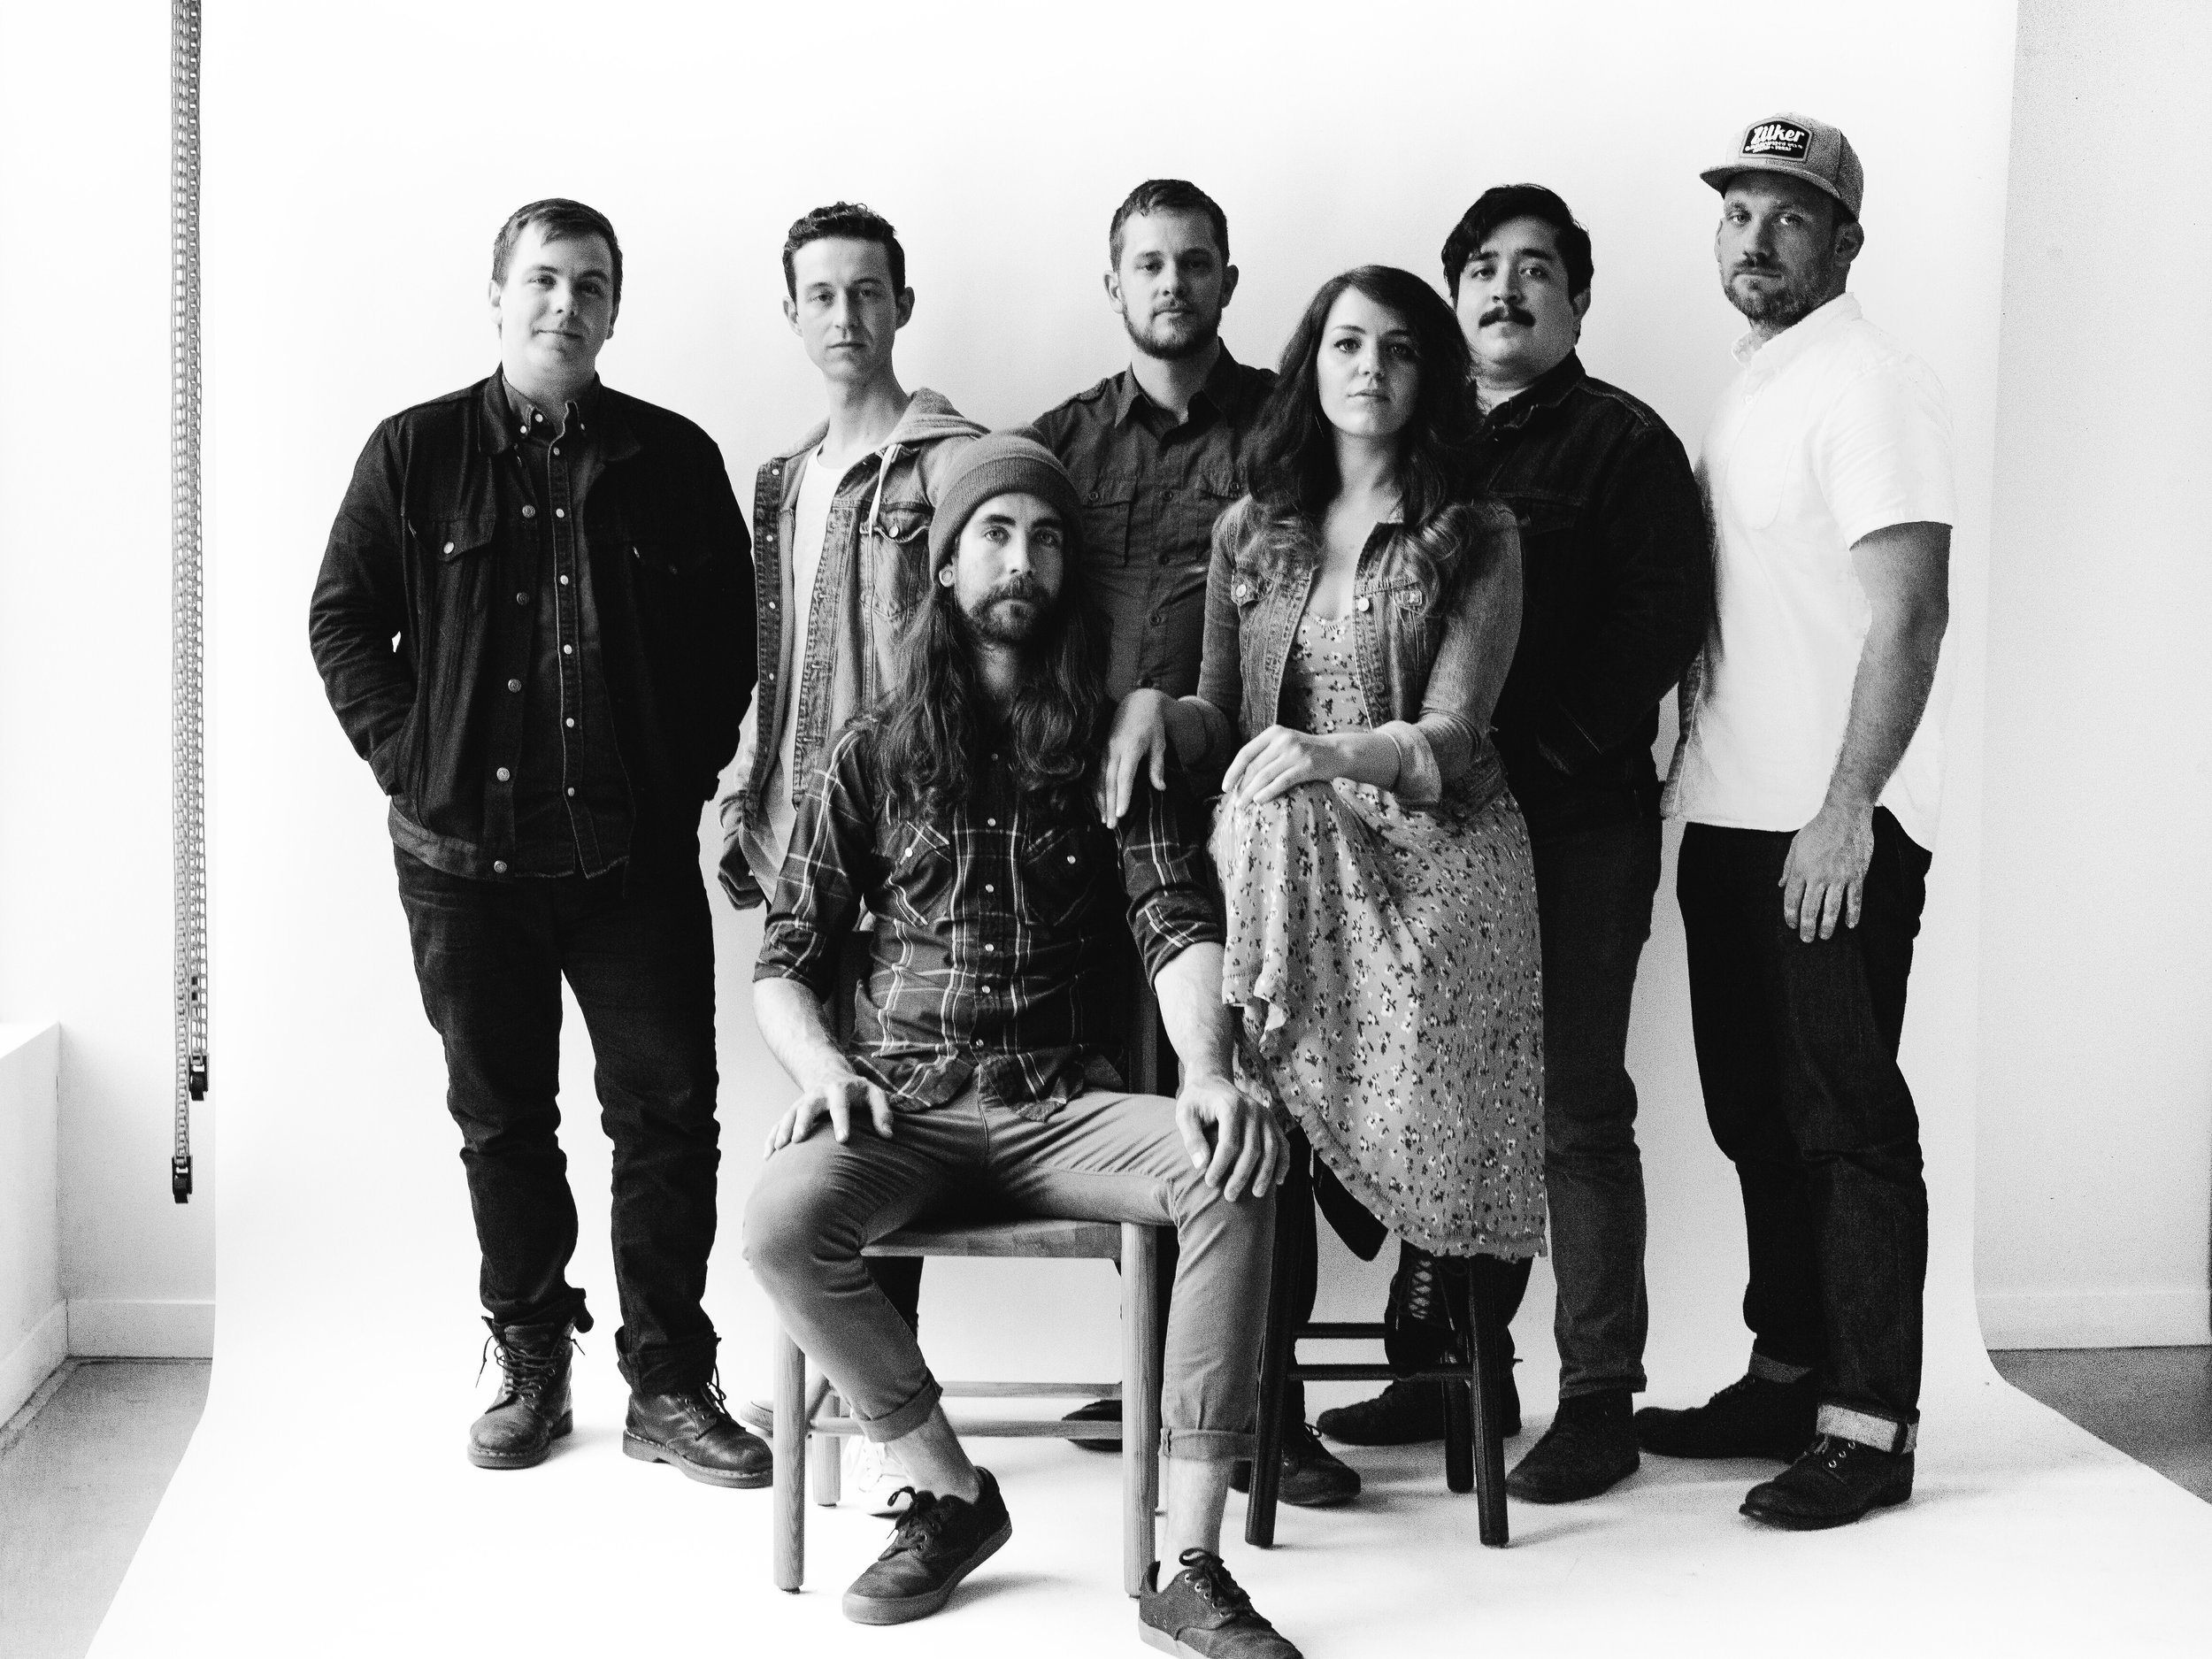 """Bridges (Acoustic) - By Old Coast""""It sounds like sand blowing through canyon walls,"""" Zane said of Seattle based Indie-Americana band, OLD COAST, """"and his voice sounds like dusk,"""" he laughed, regarding singer Asher Deaver."""